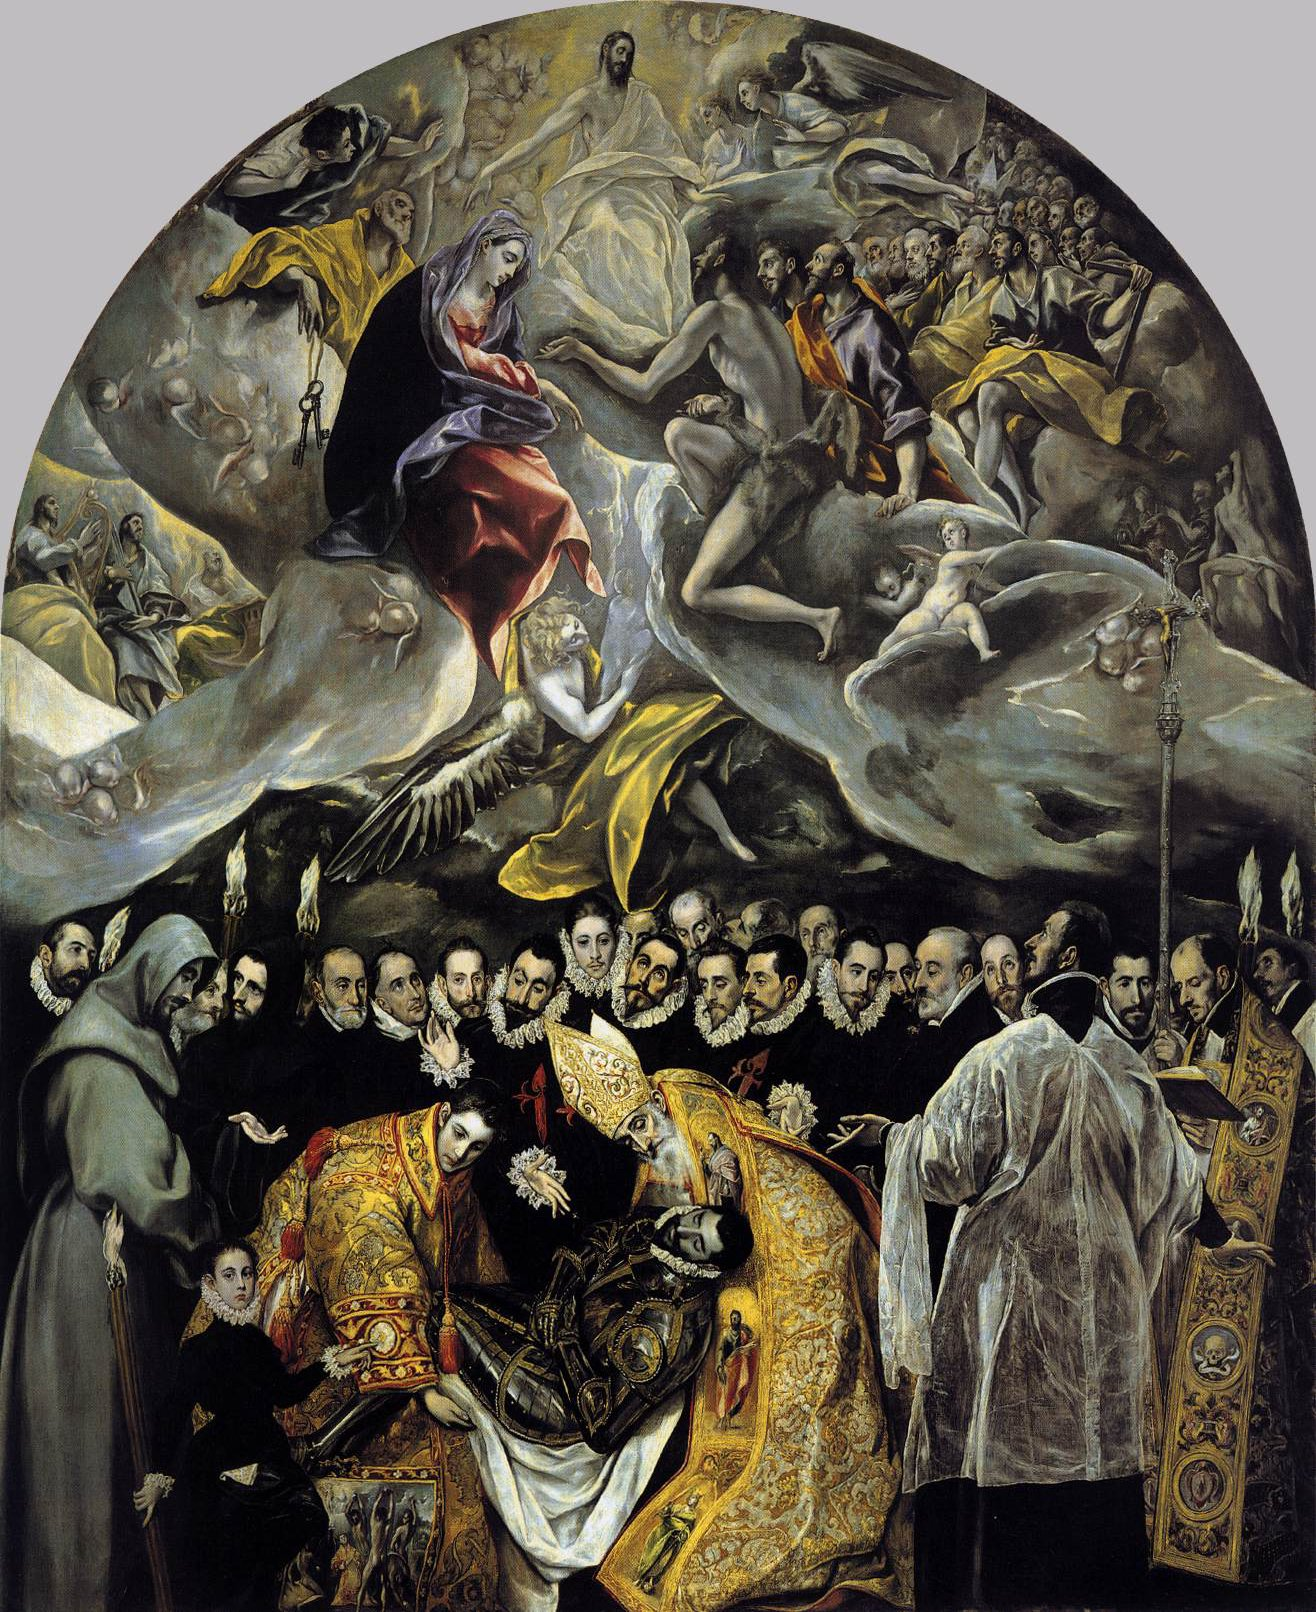 The Burial of the Count of Orgaz painting by El Greco